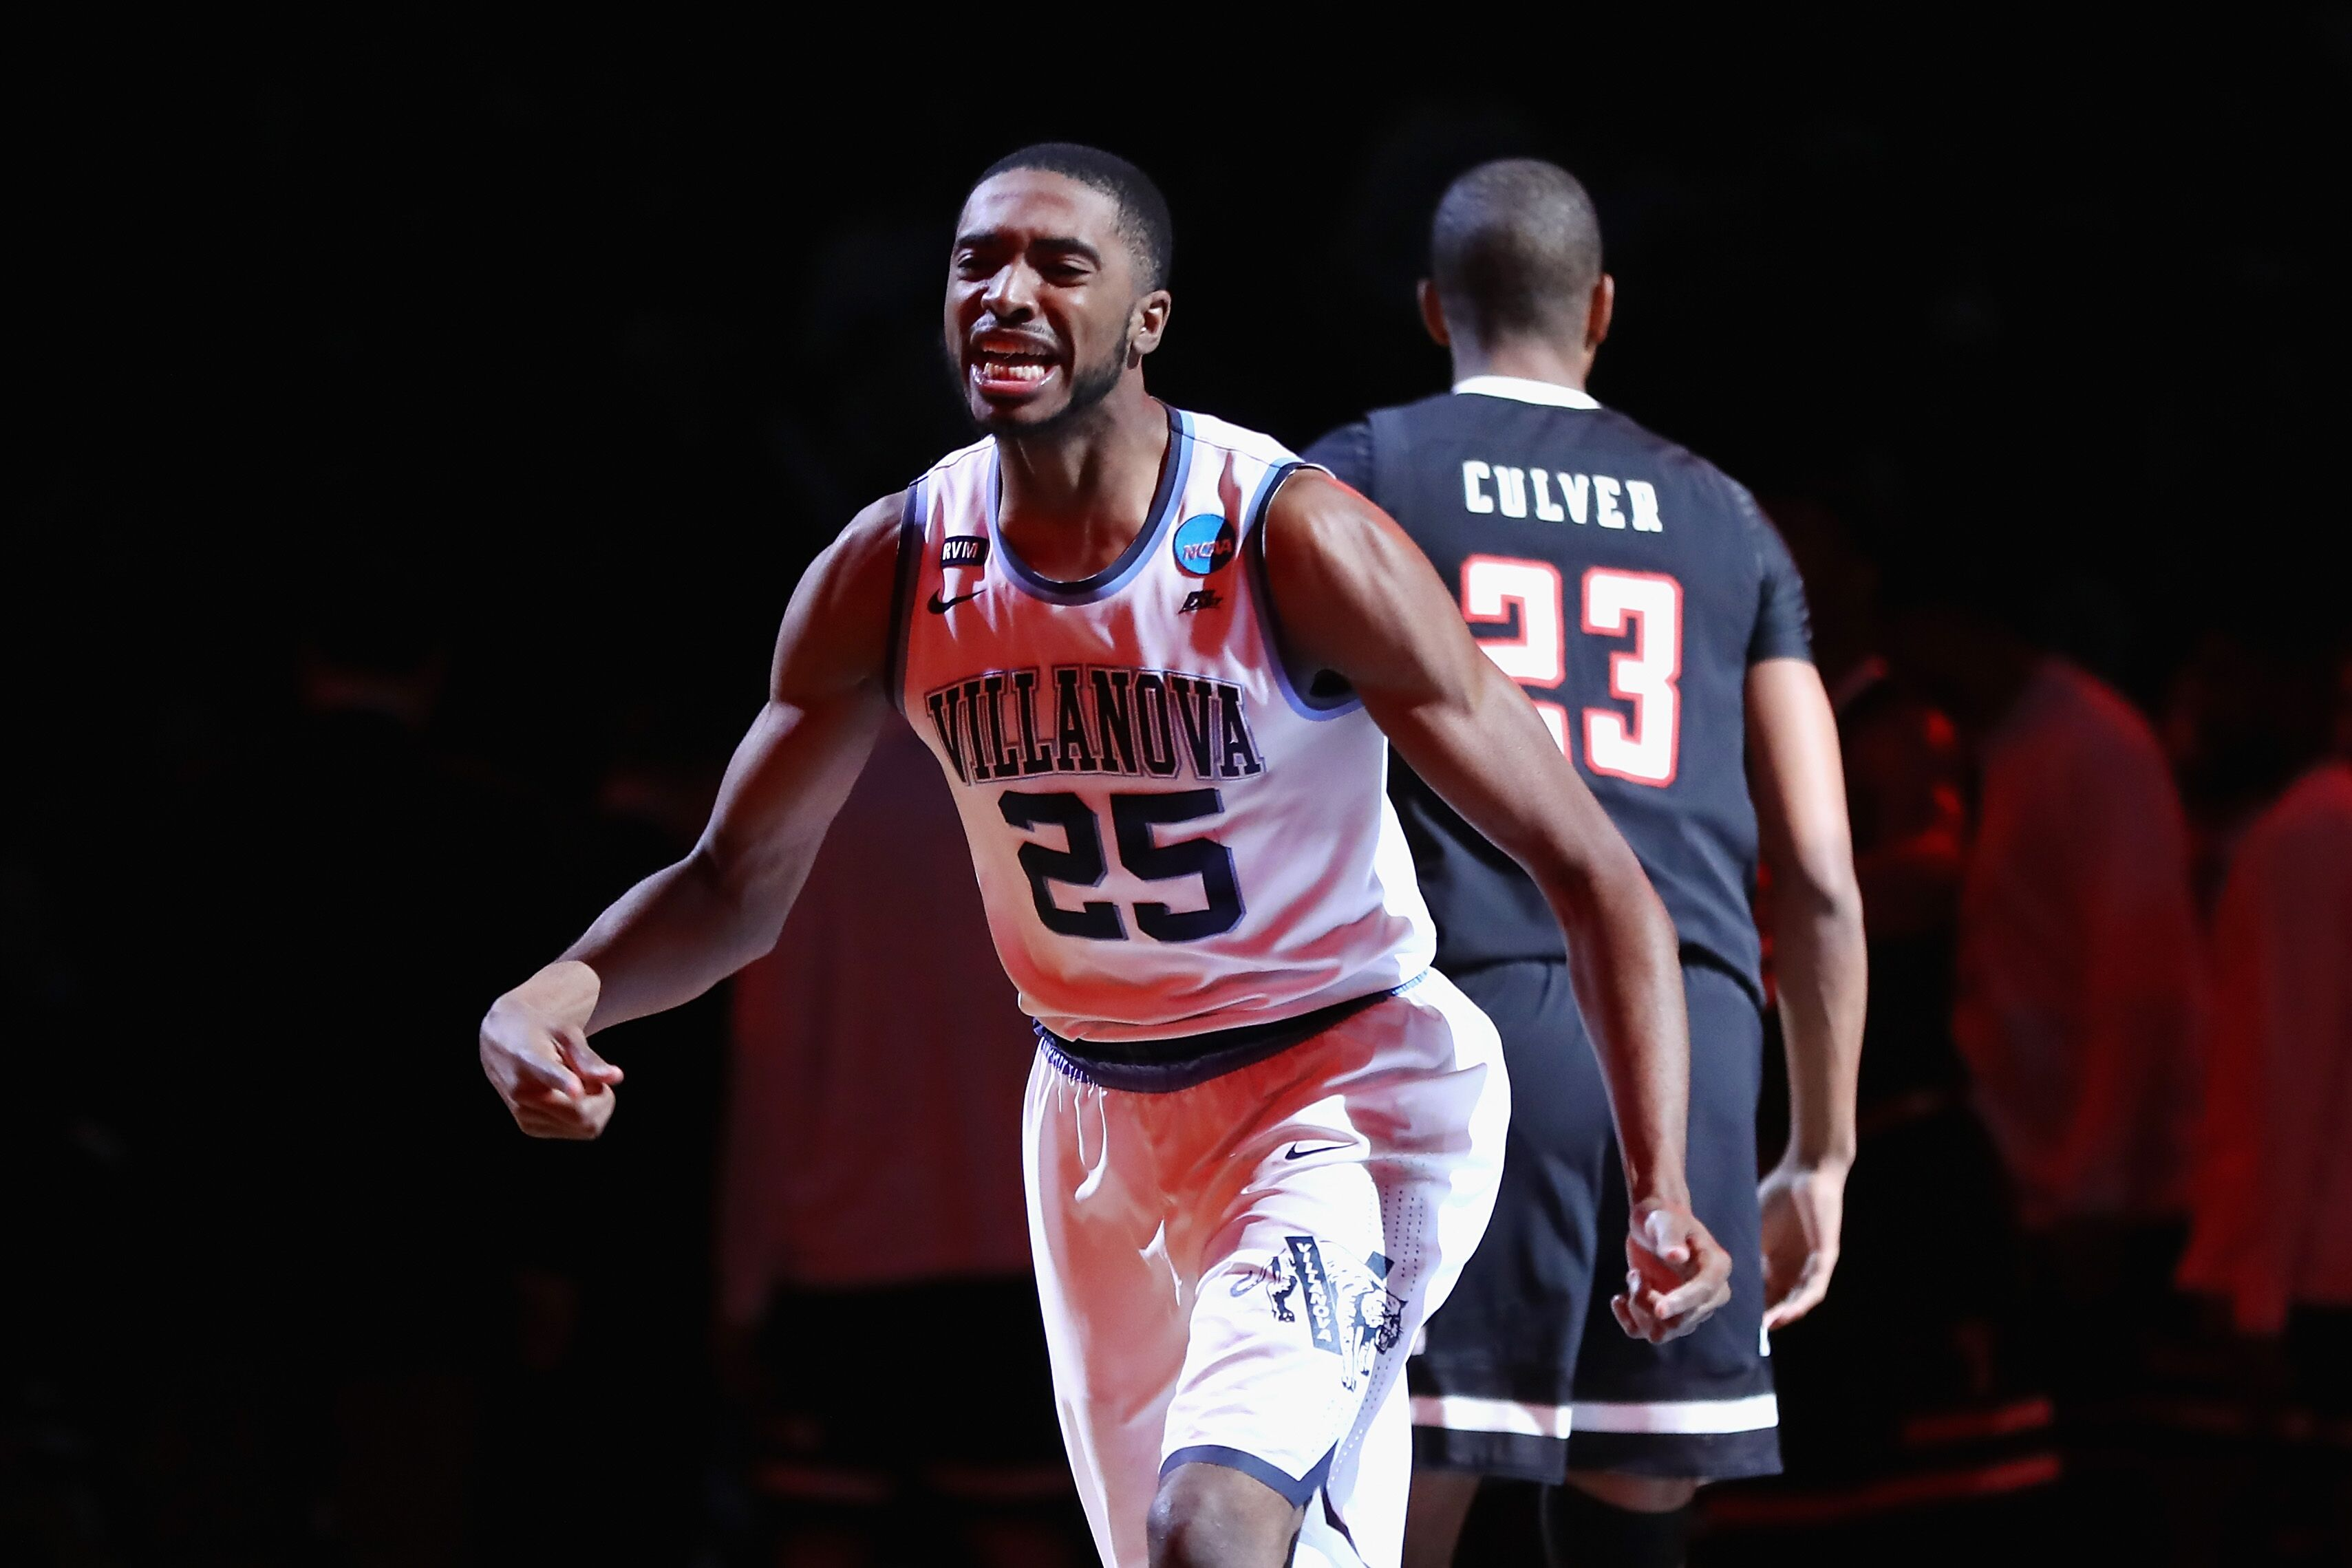 ec07bdd6b Philadelphia 76ers could secure Mikal Bridges with the Lakers pick